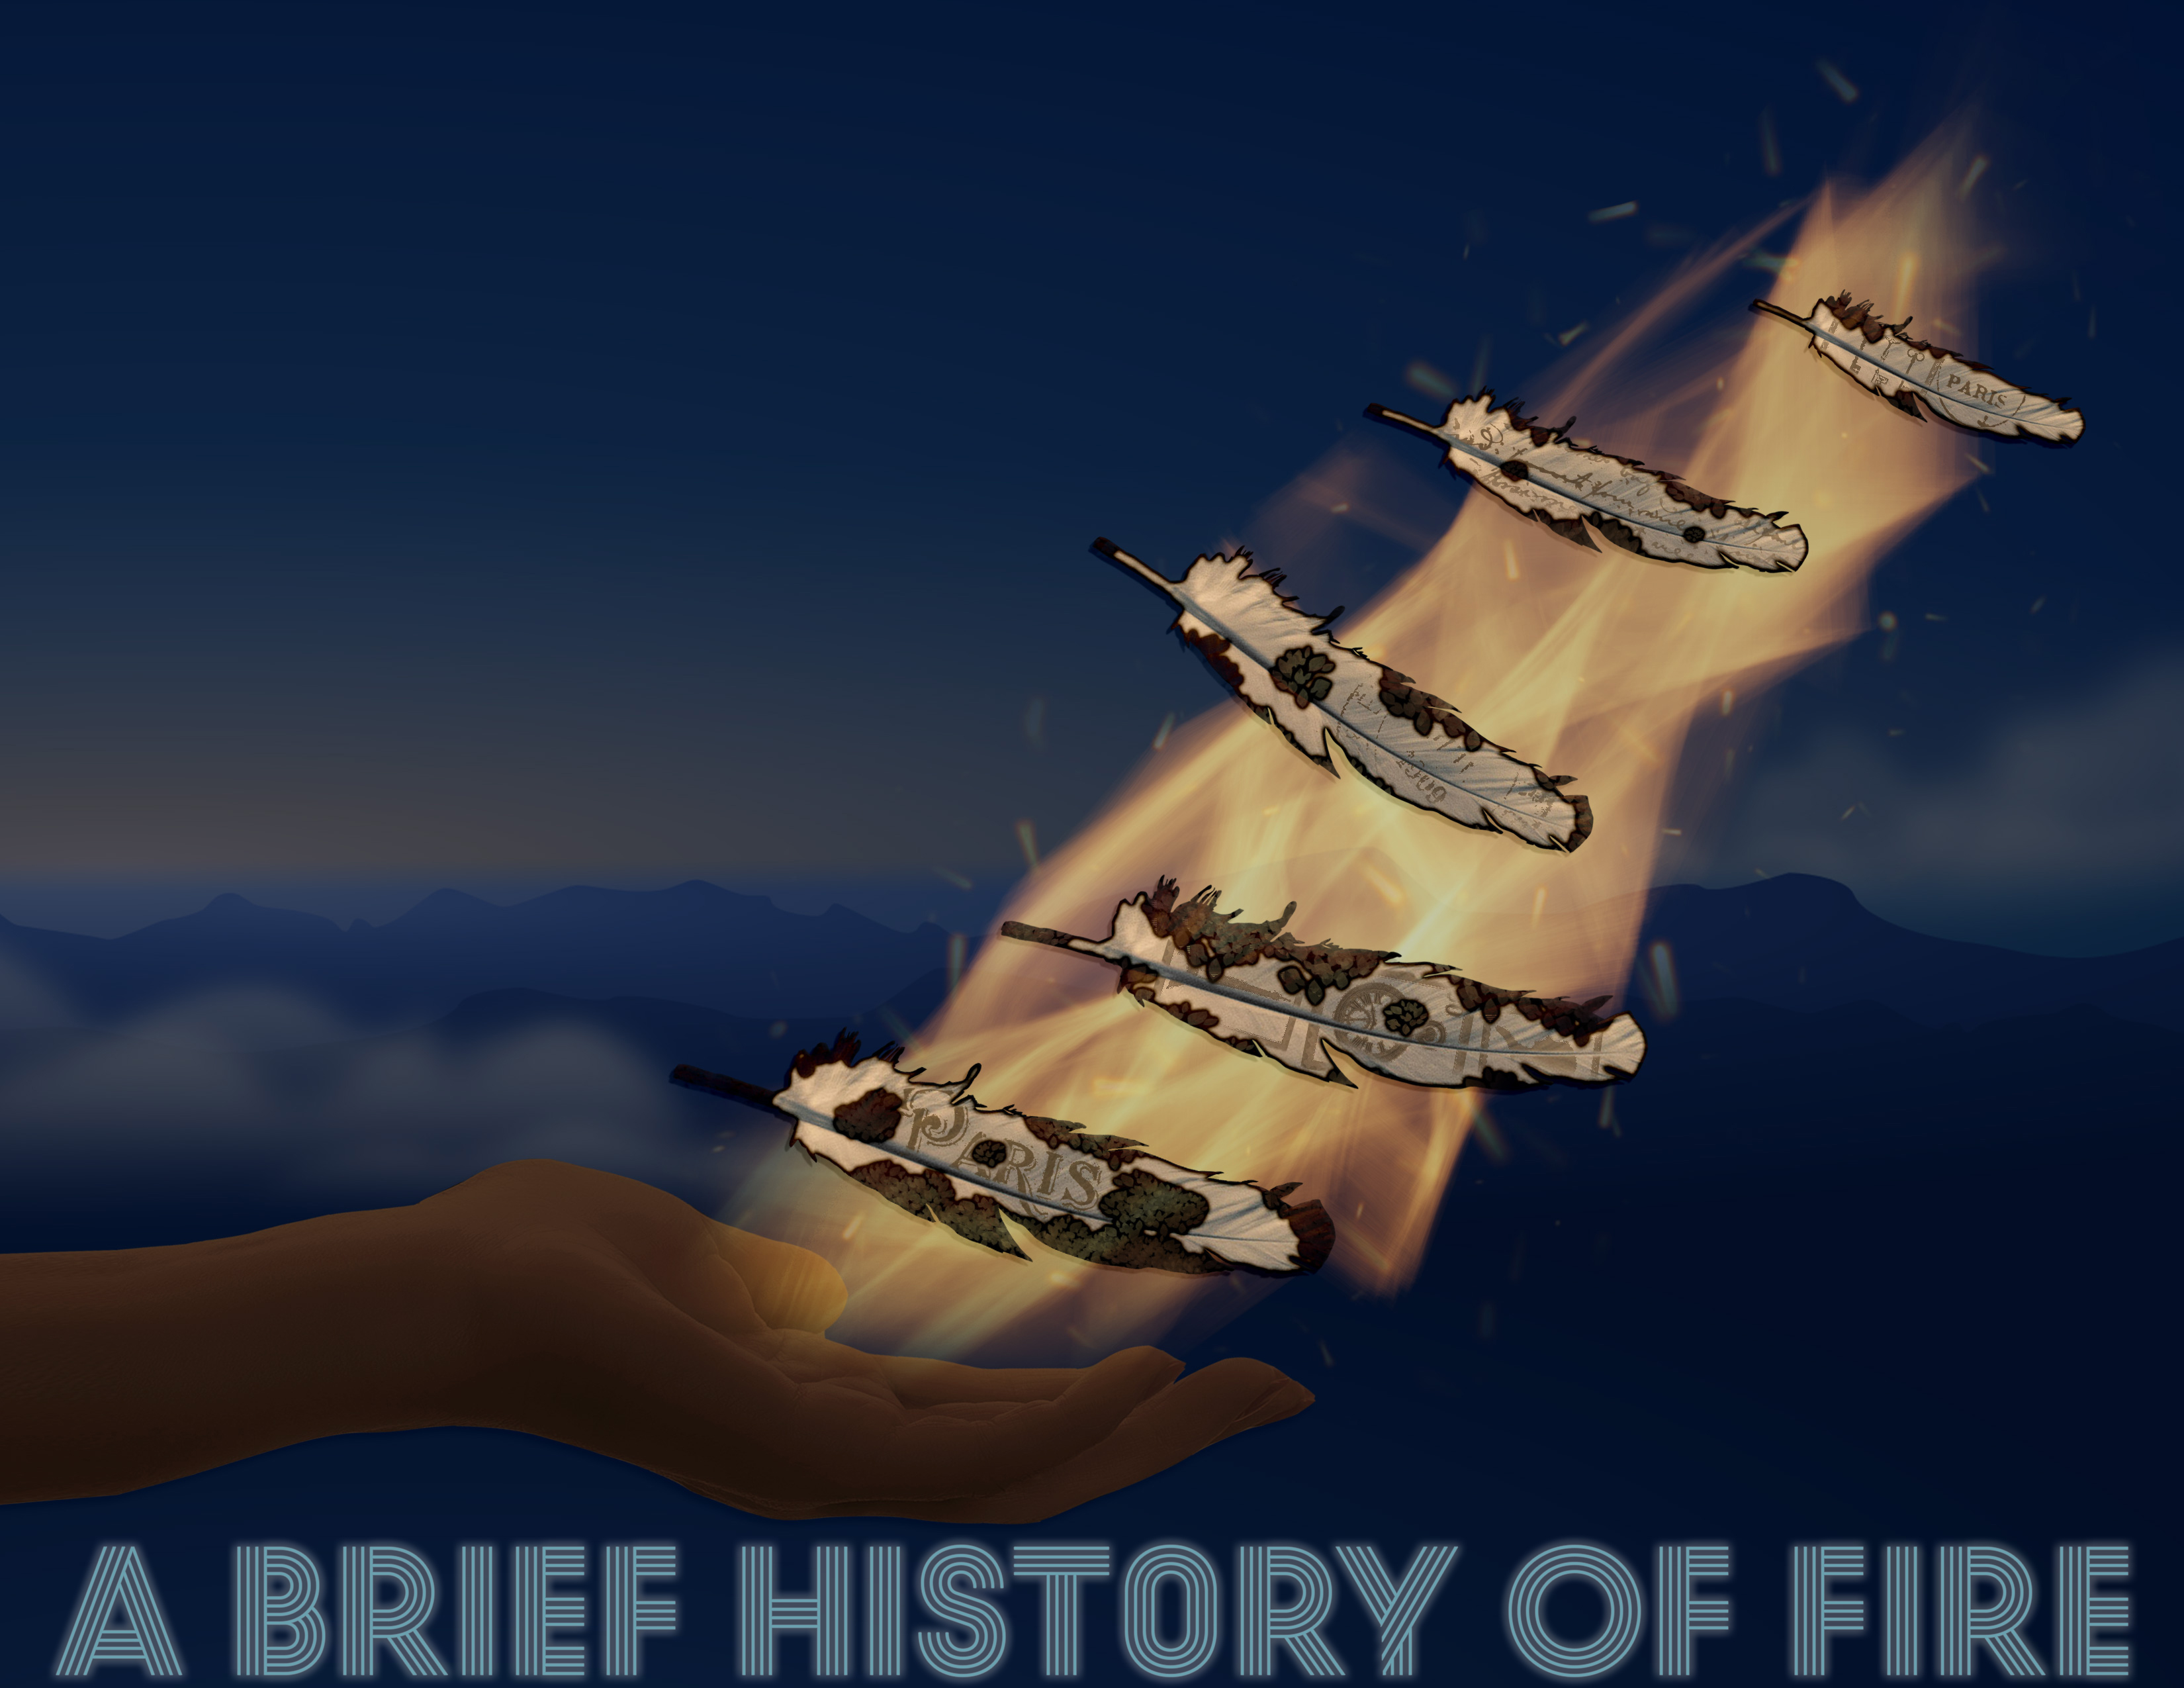 A-Brief-History-of-Fire-show-art copy.jpg